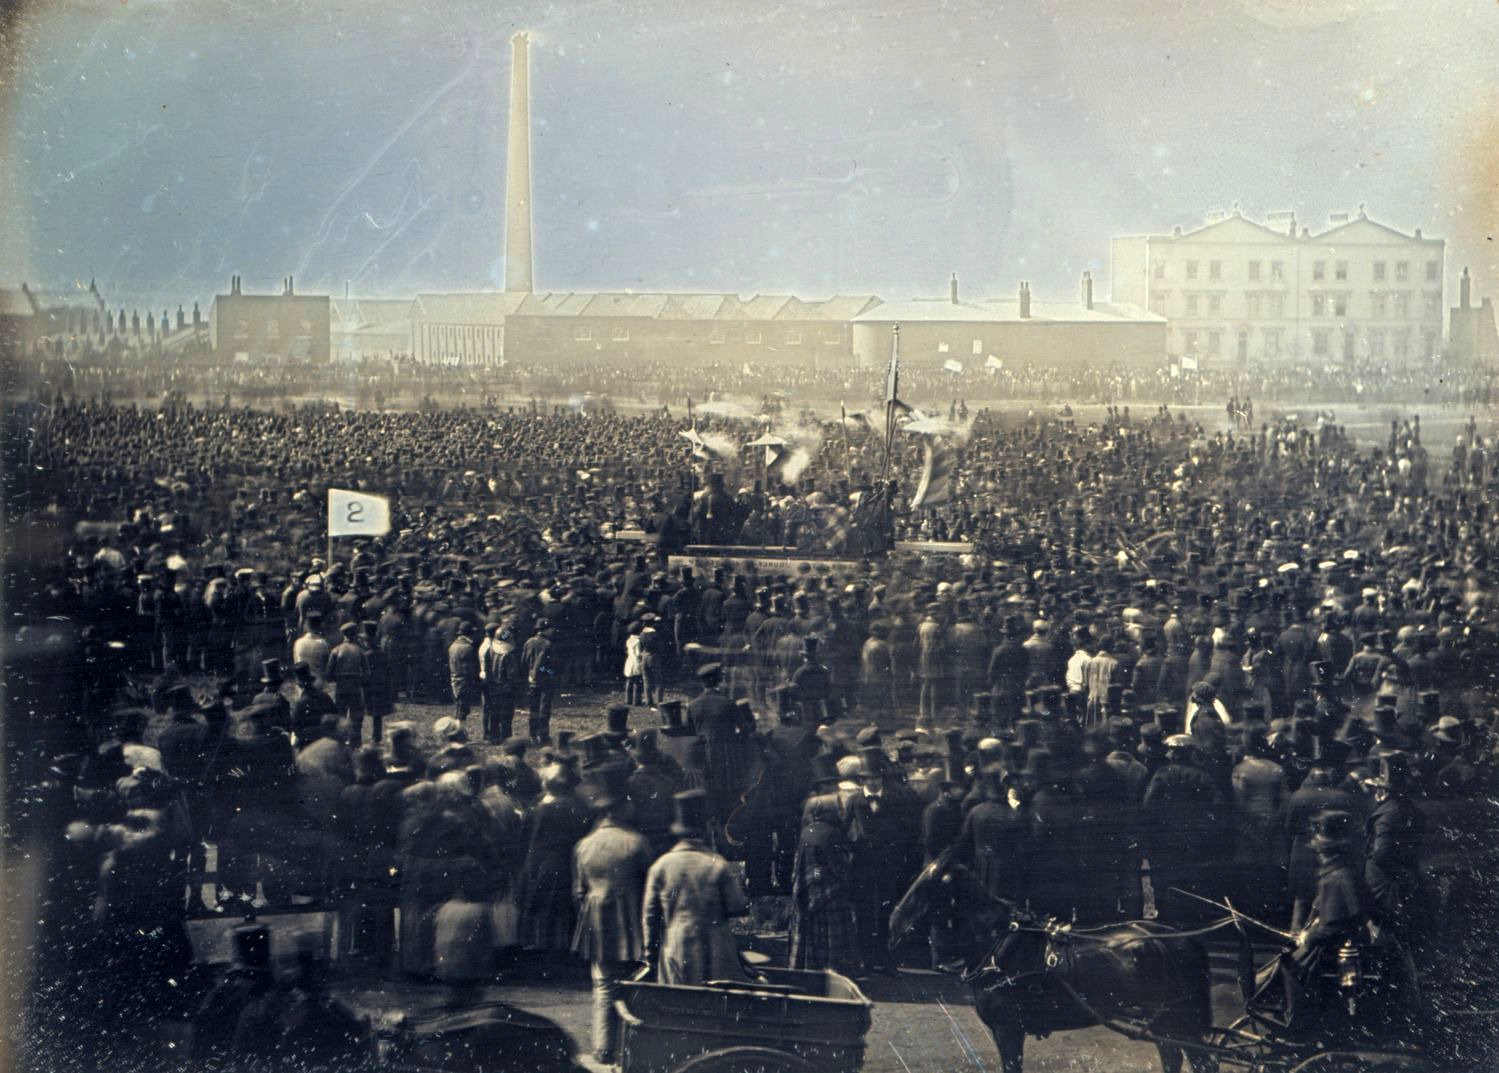 http://upload.wikimedia.org/wikipedia/commons/2/24/Chartist_meeting%2C_Kennington_Common.jpg